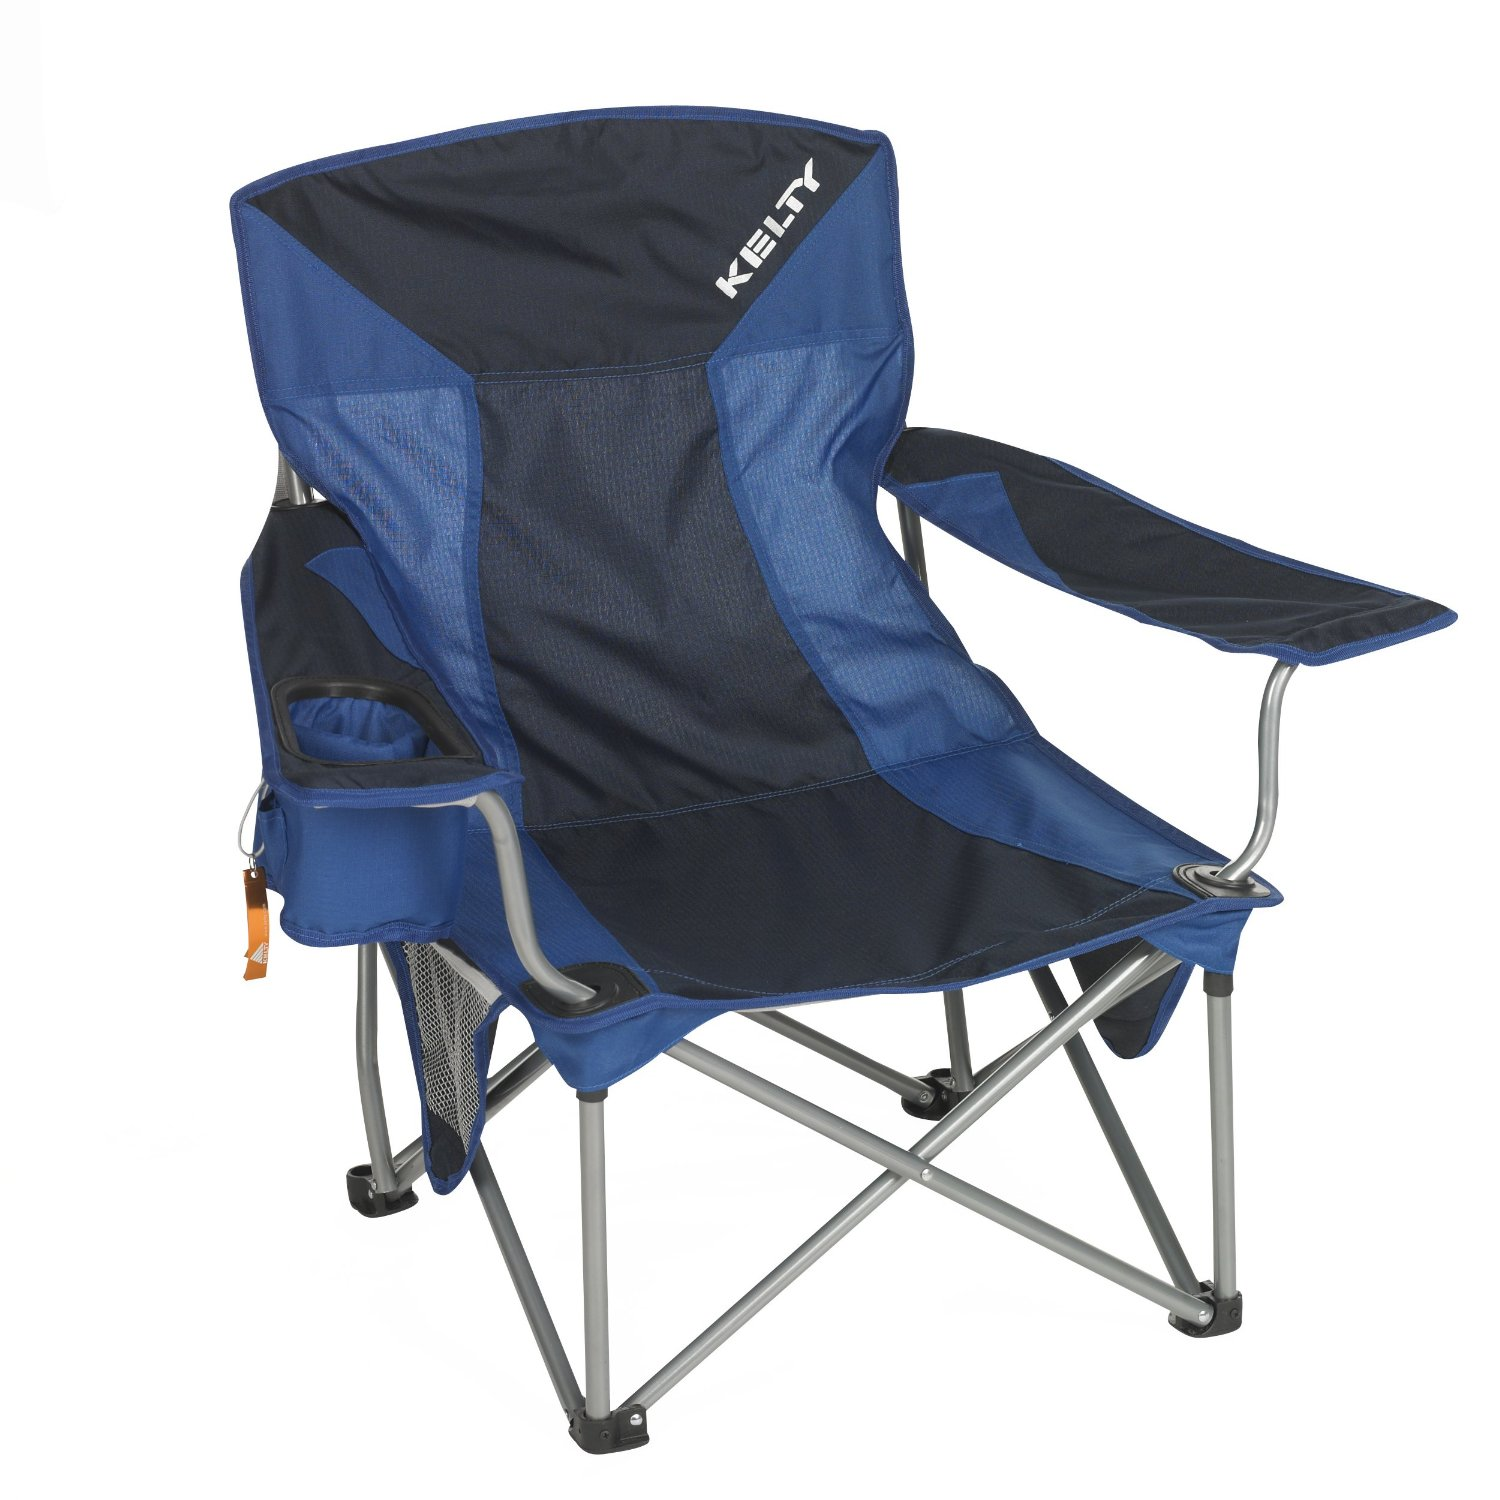 Best Lawn Chair Reviews Which of These 7 Lawn Chairs Will You Buy Next